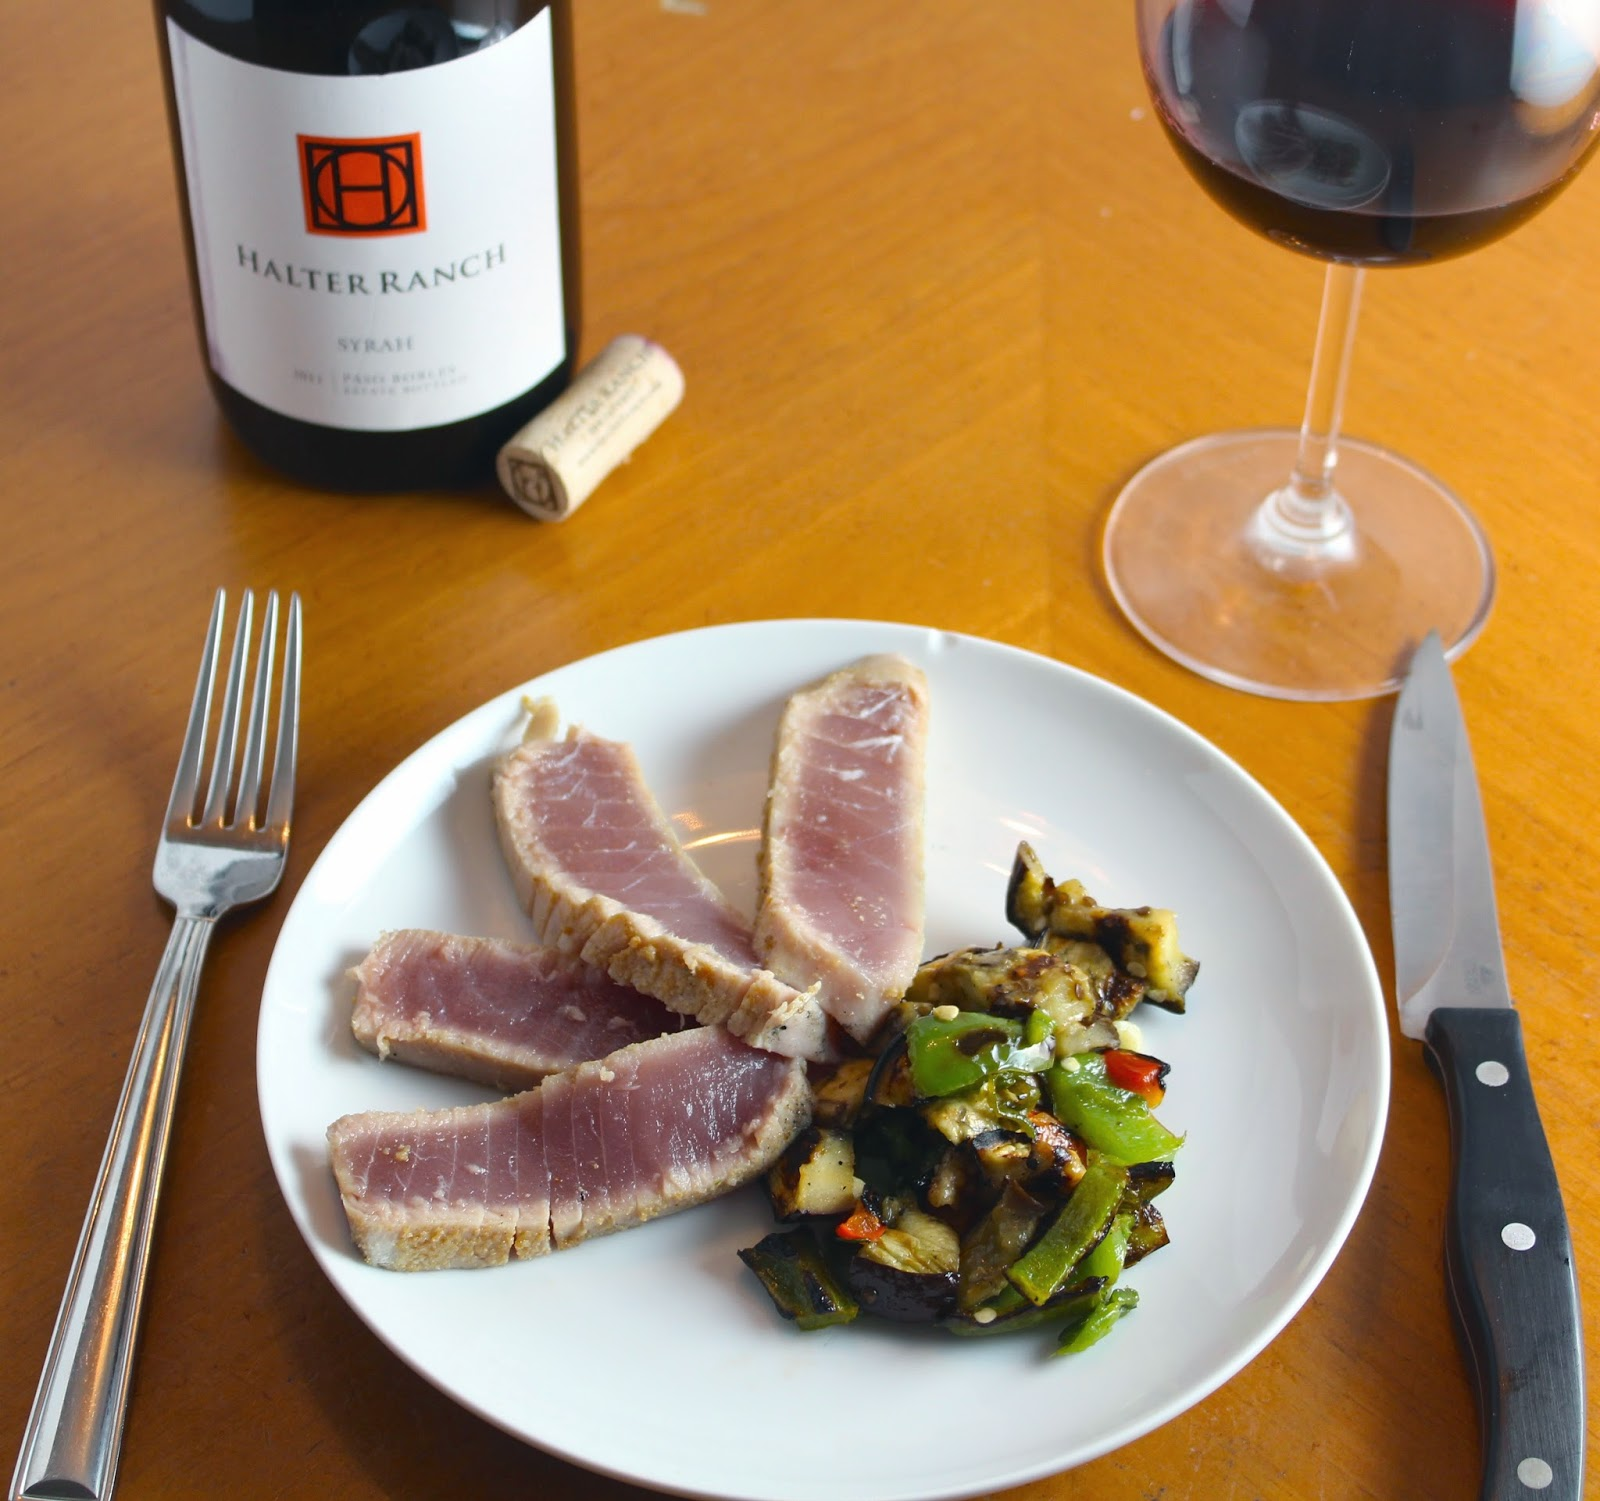 Grilled Tuna with Eggplants and Peppers Served with a Halter Ranch Syrah. Cooking Chat recipe.